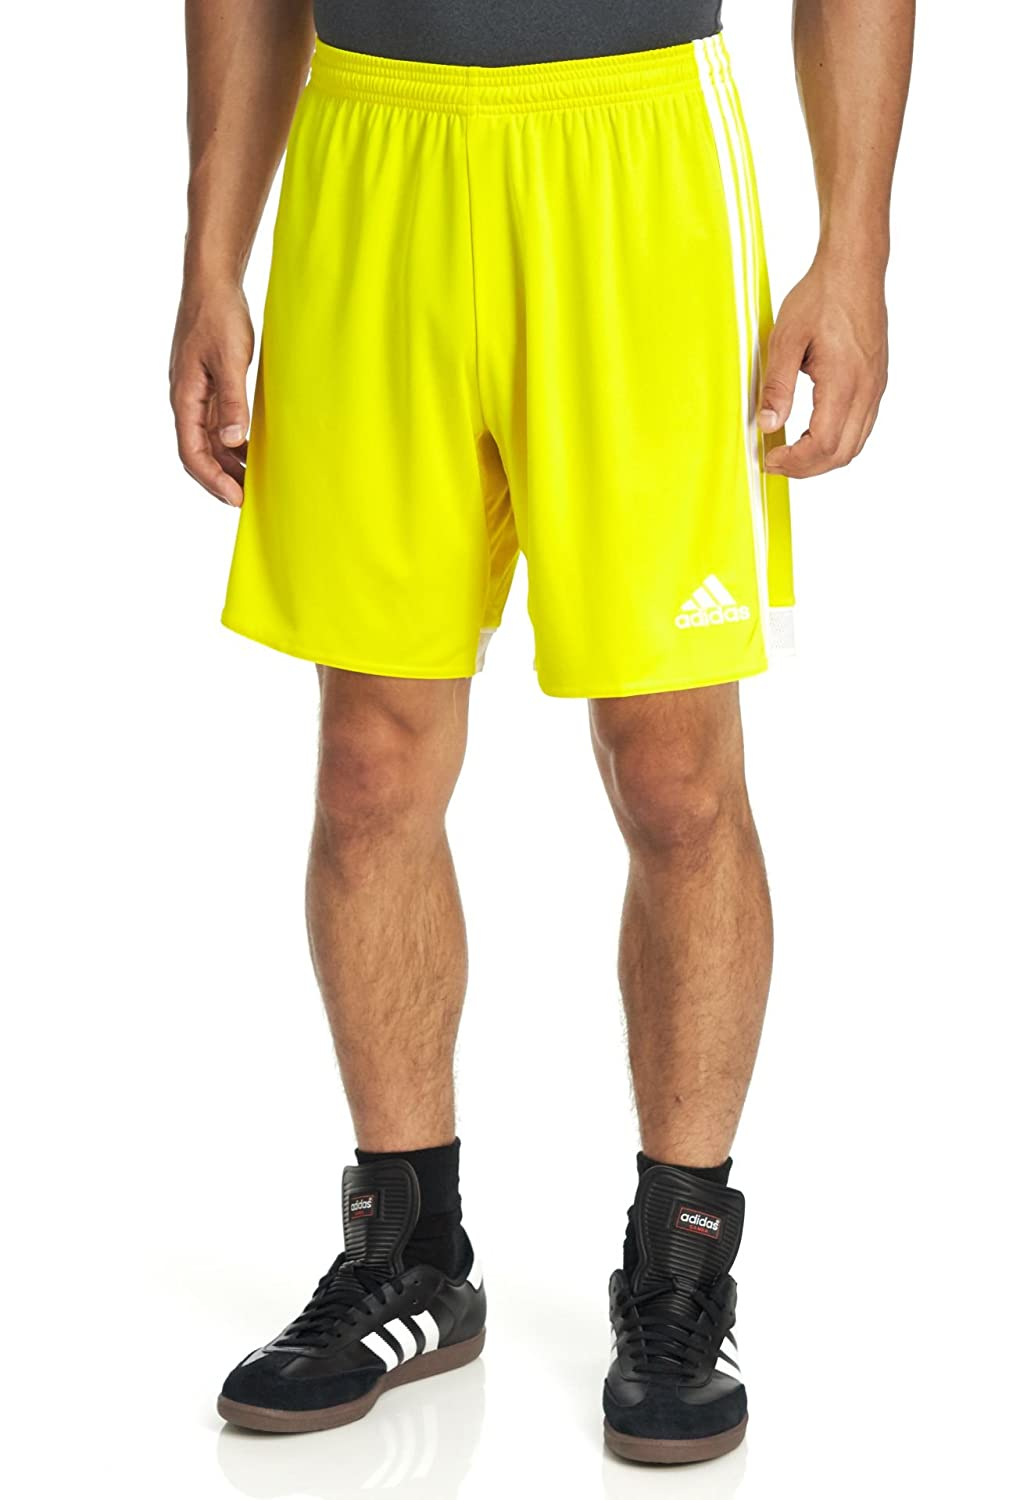 Adidas Herren Regista 14 Shorts – Orange